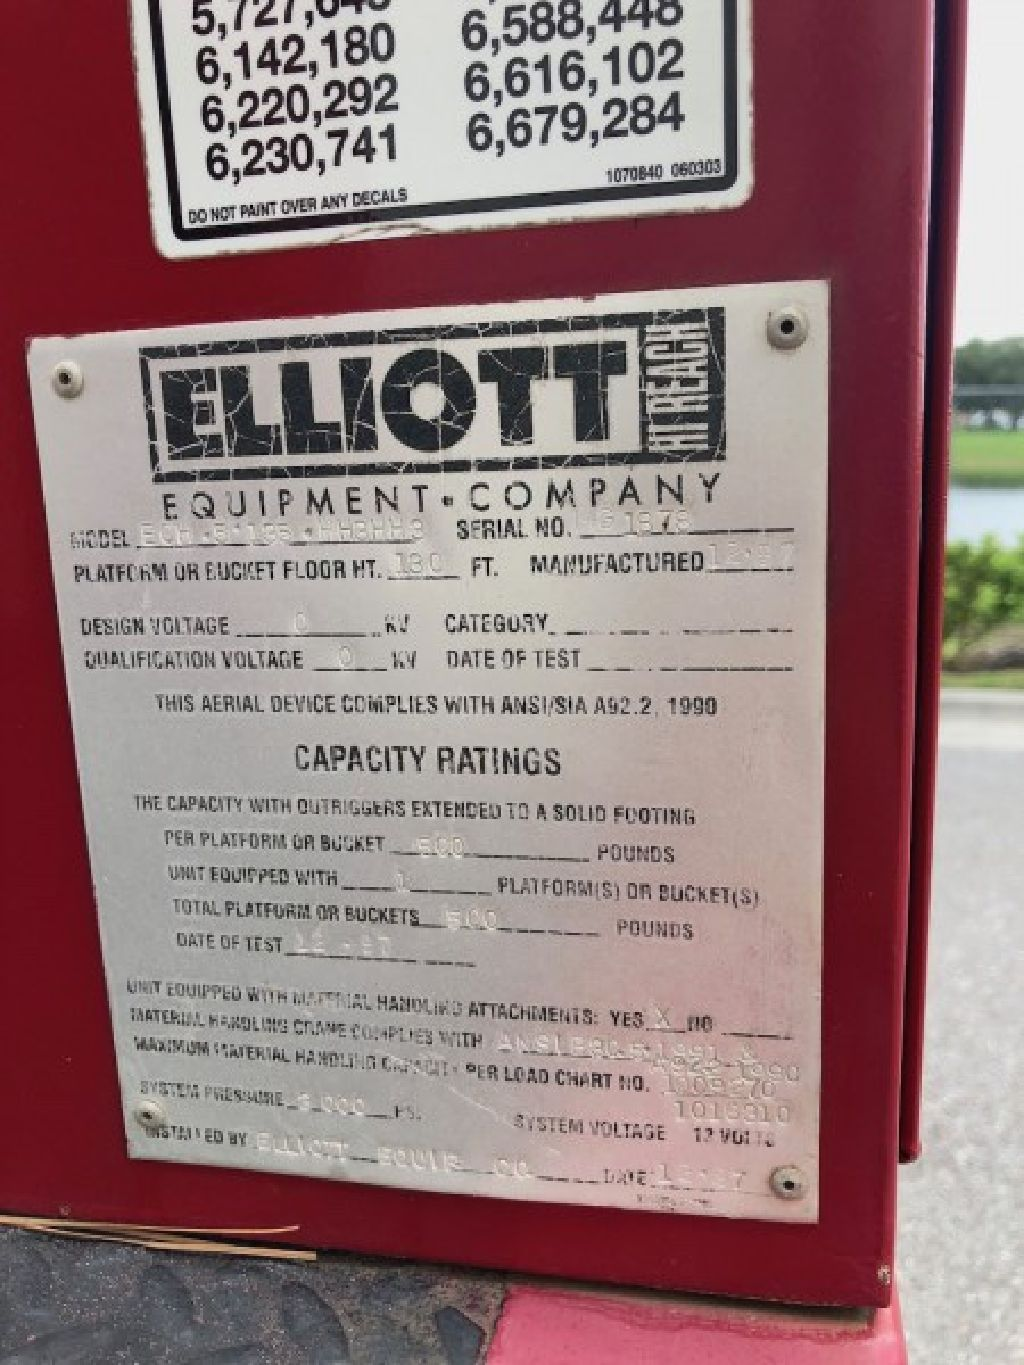 Sign Crane Installation Truck for Sale1998 Elliott 135R Mounted On a